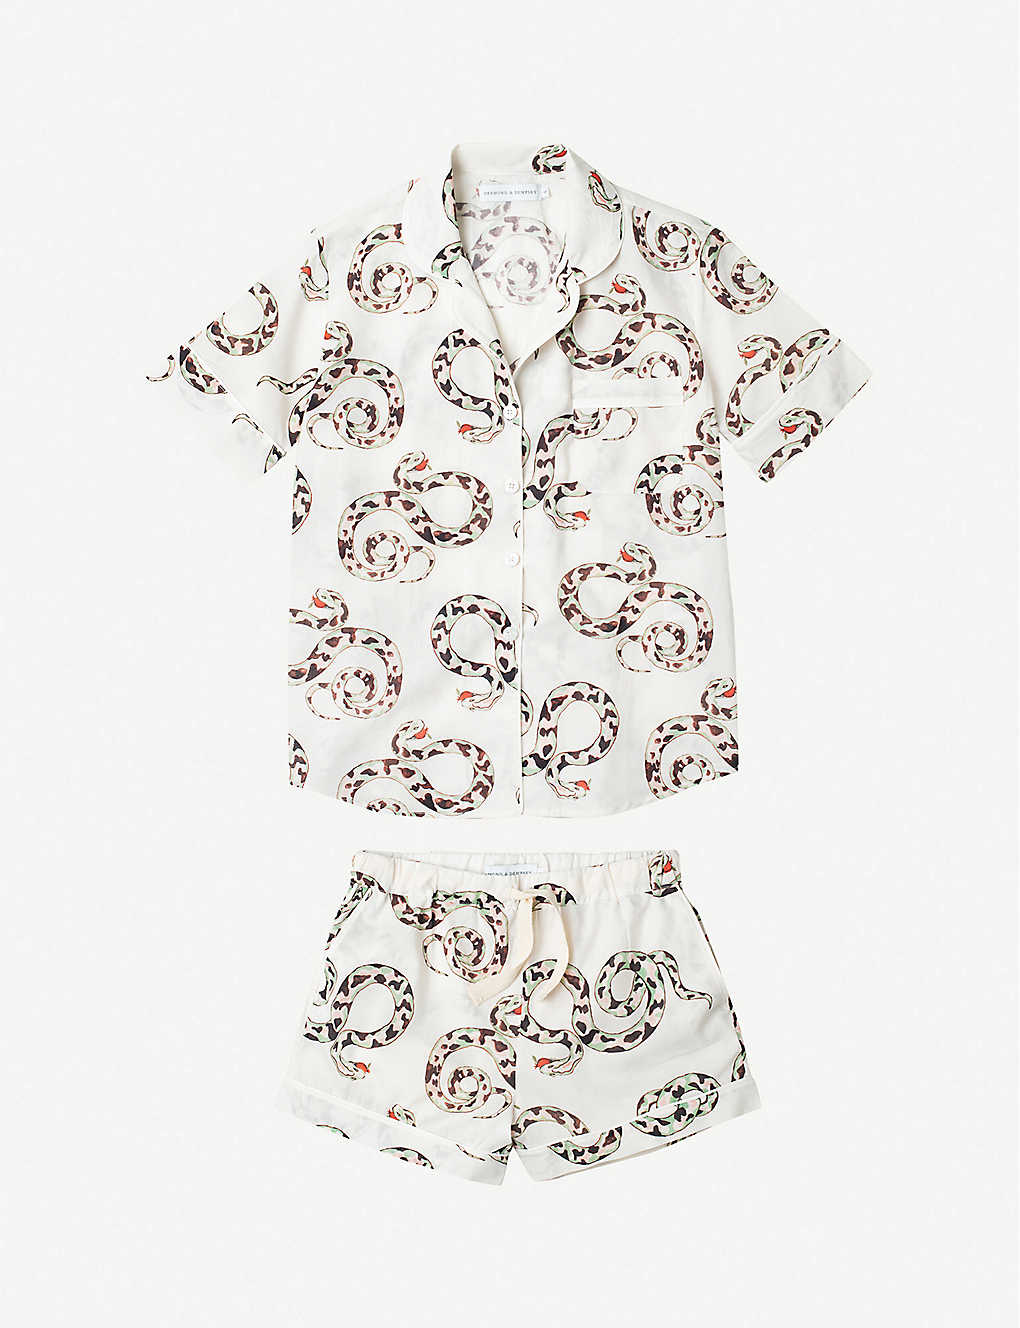 DESMOND AND DEMPSEY: The Kaa snake-print cotton pyjama short set